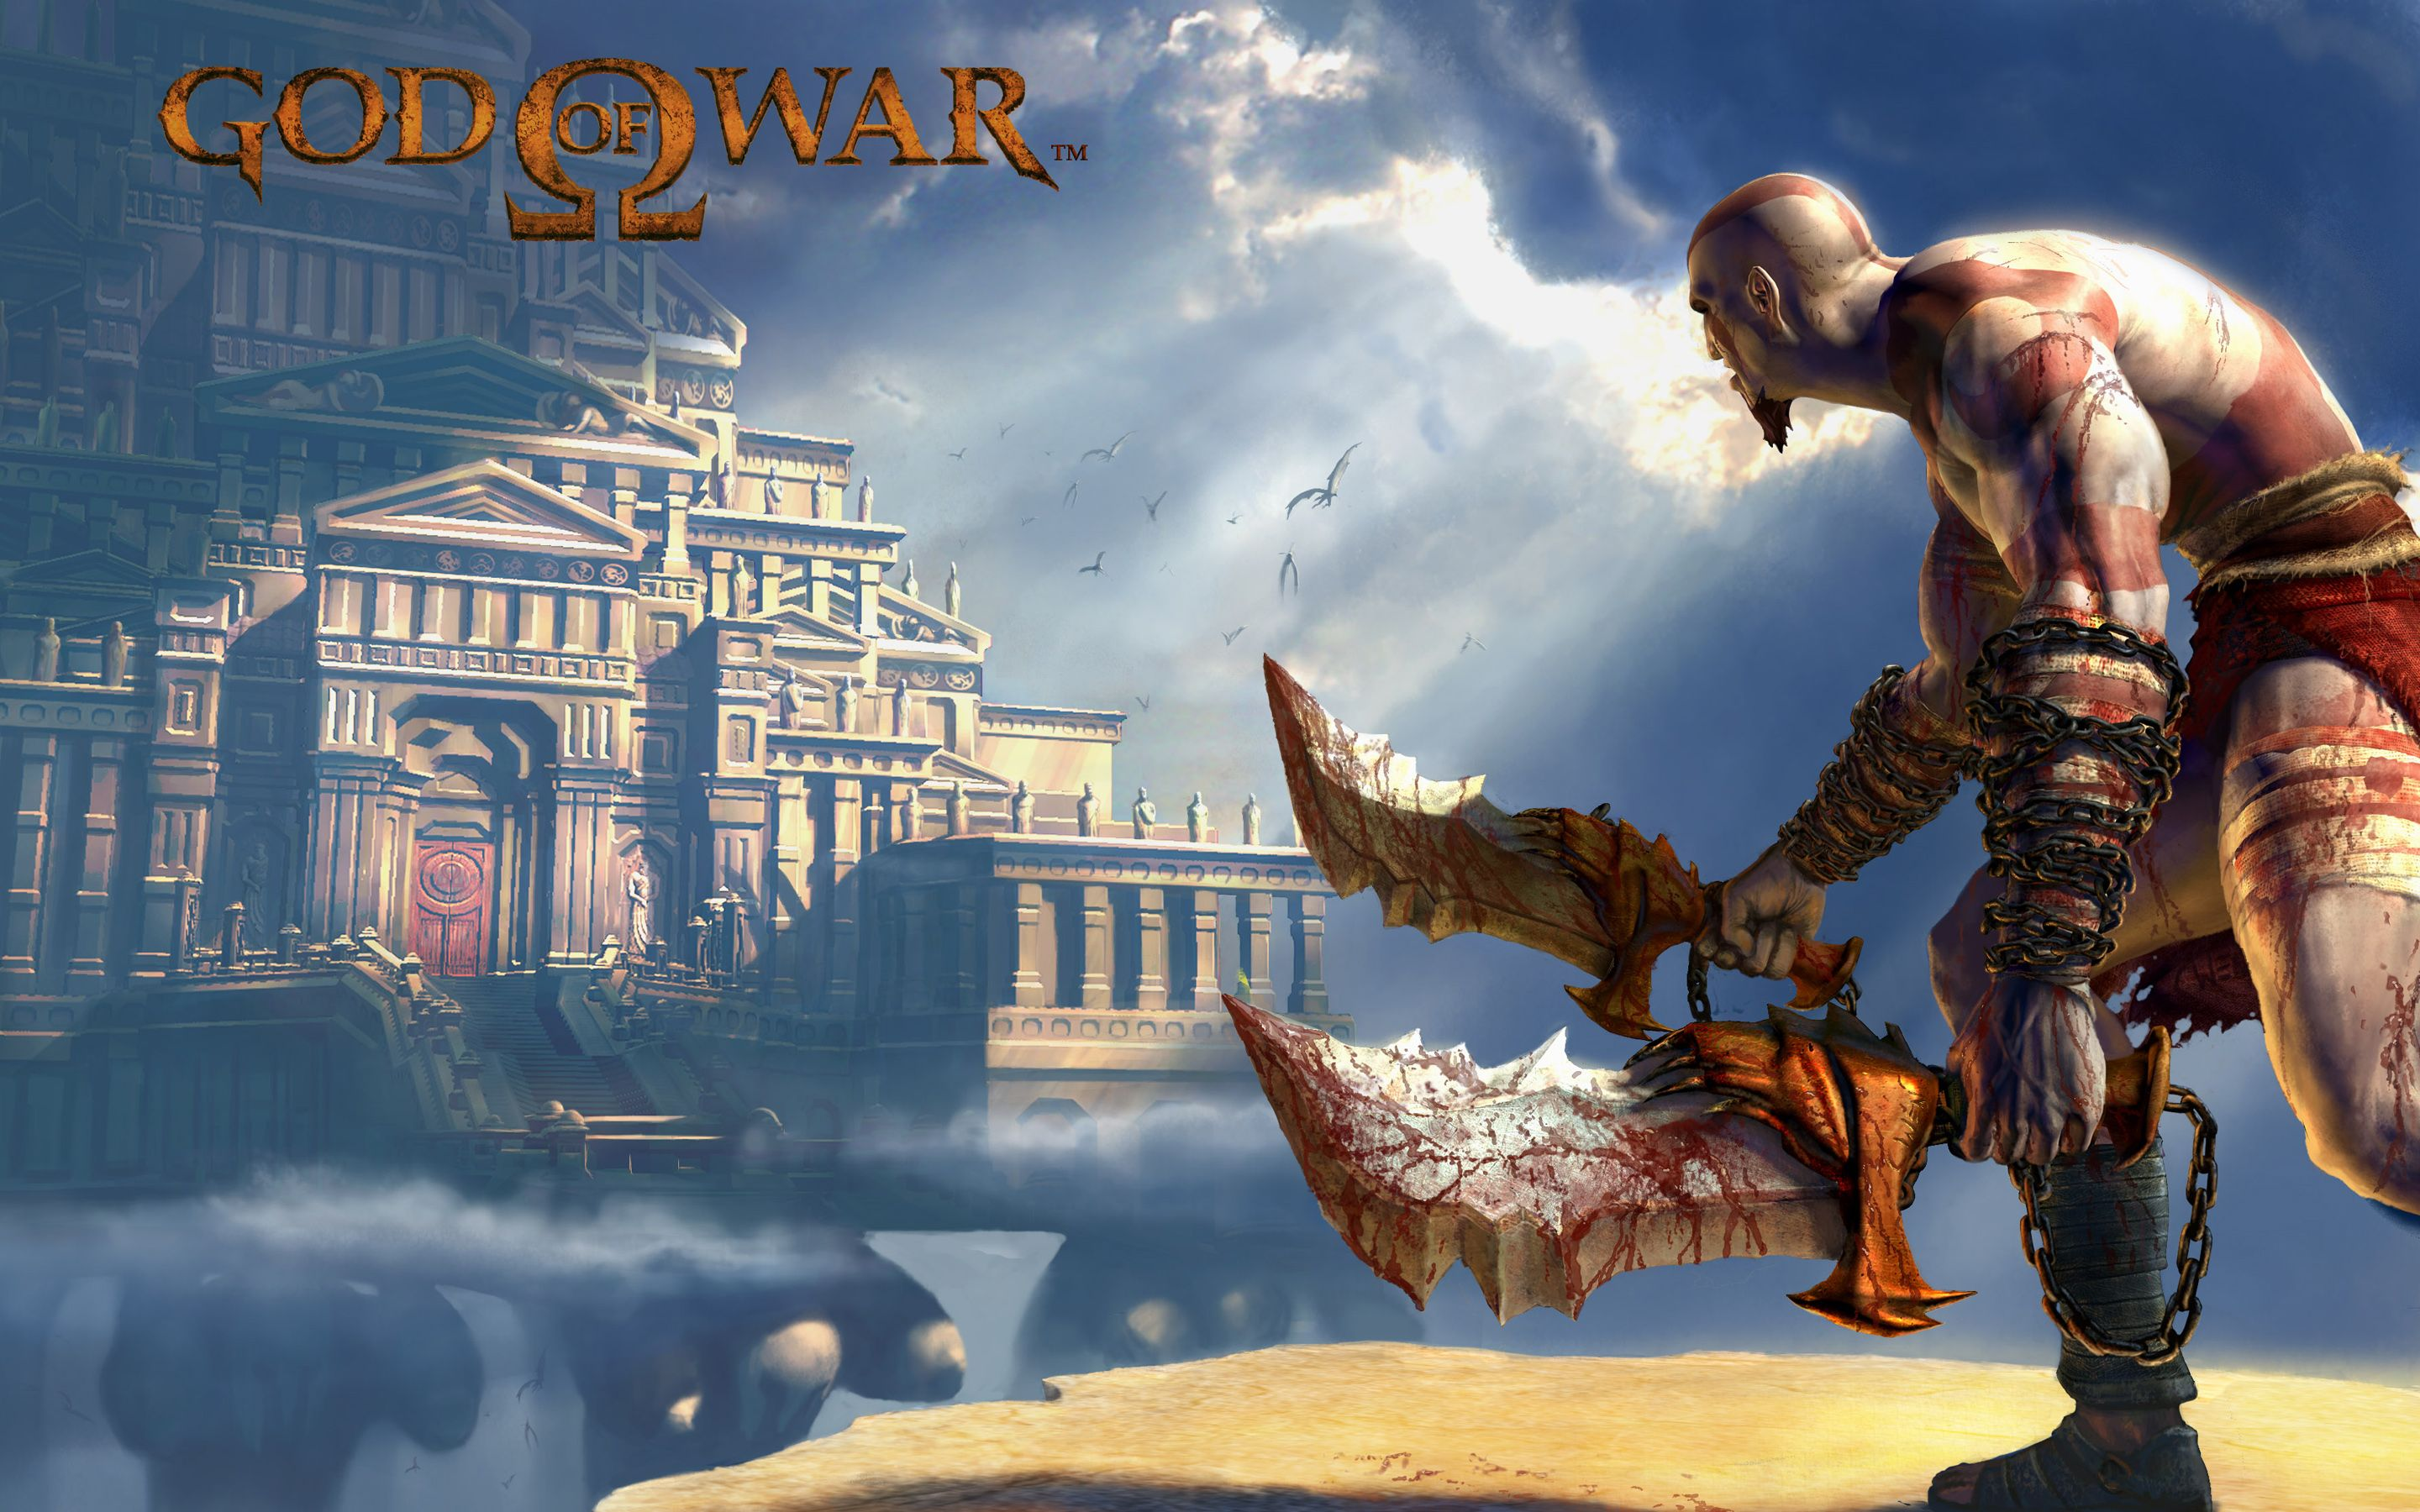 Pin By Hd Wallpapers On Movie Hd Wallpapers Pinterest God Of War